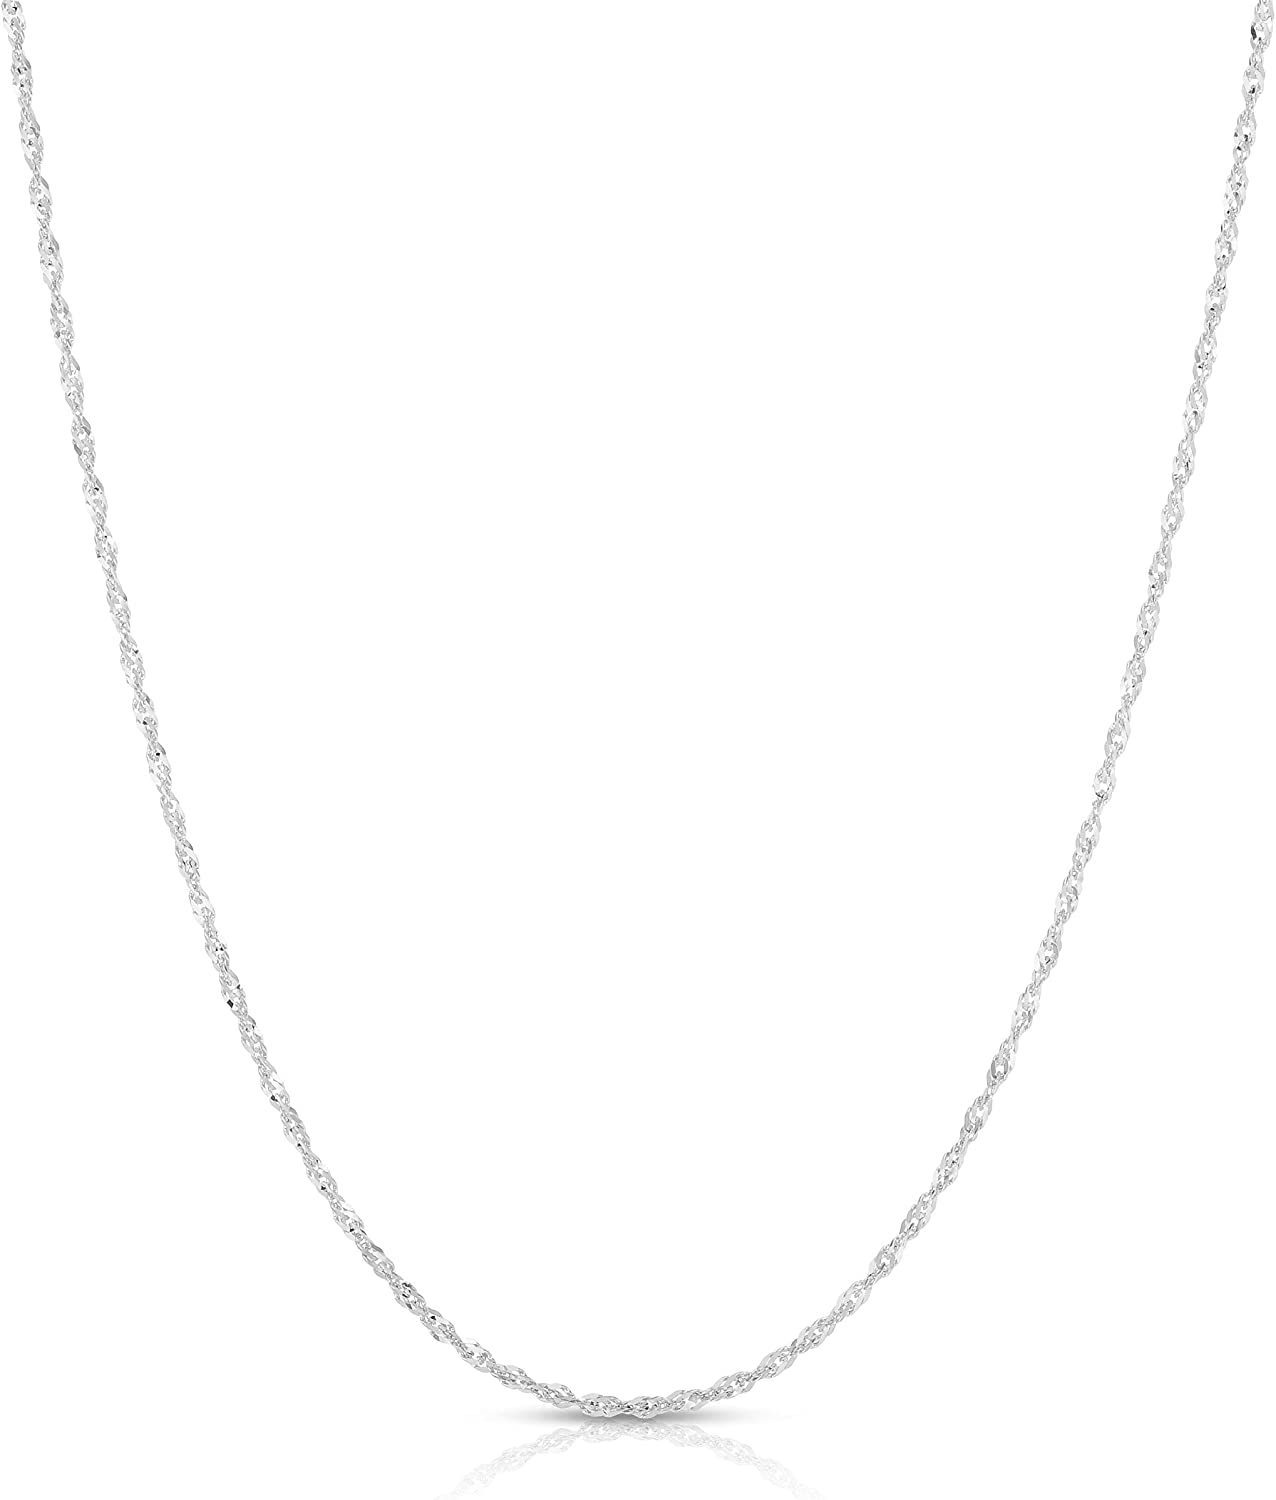 Floreo 14k Yellow Or White Gold 1mm Singapore Chain Necklace Chains Jewelry Urbytus Com